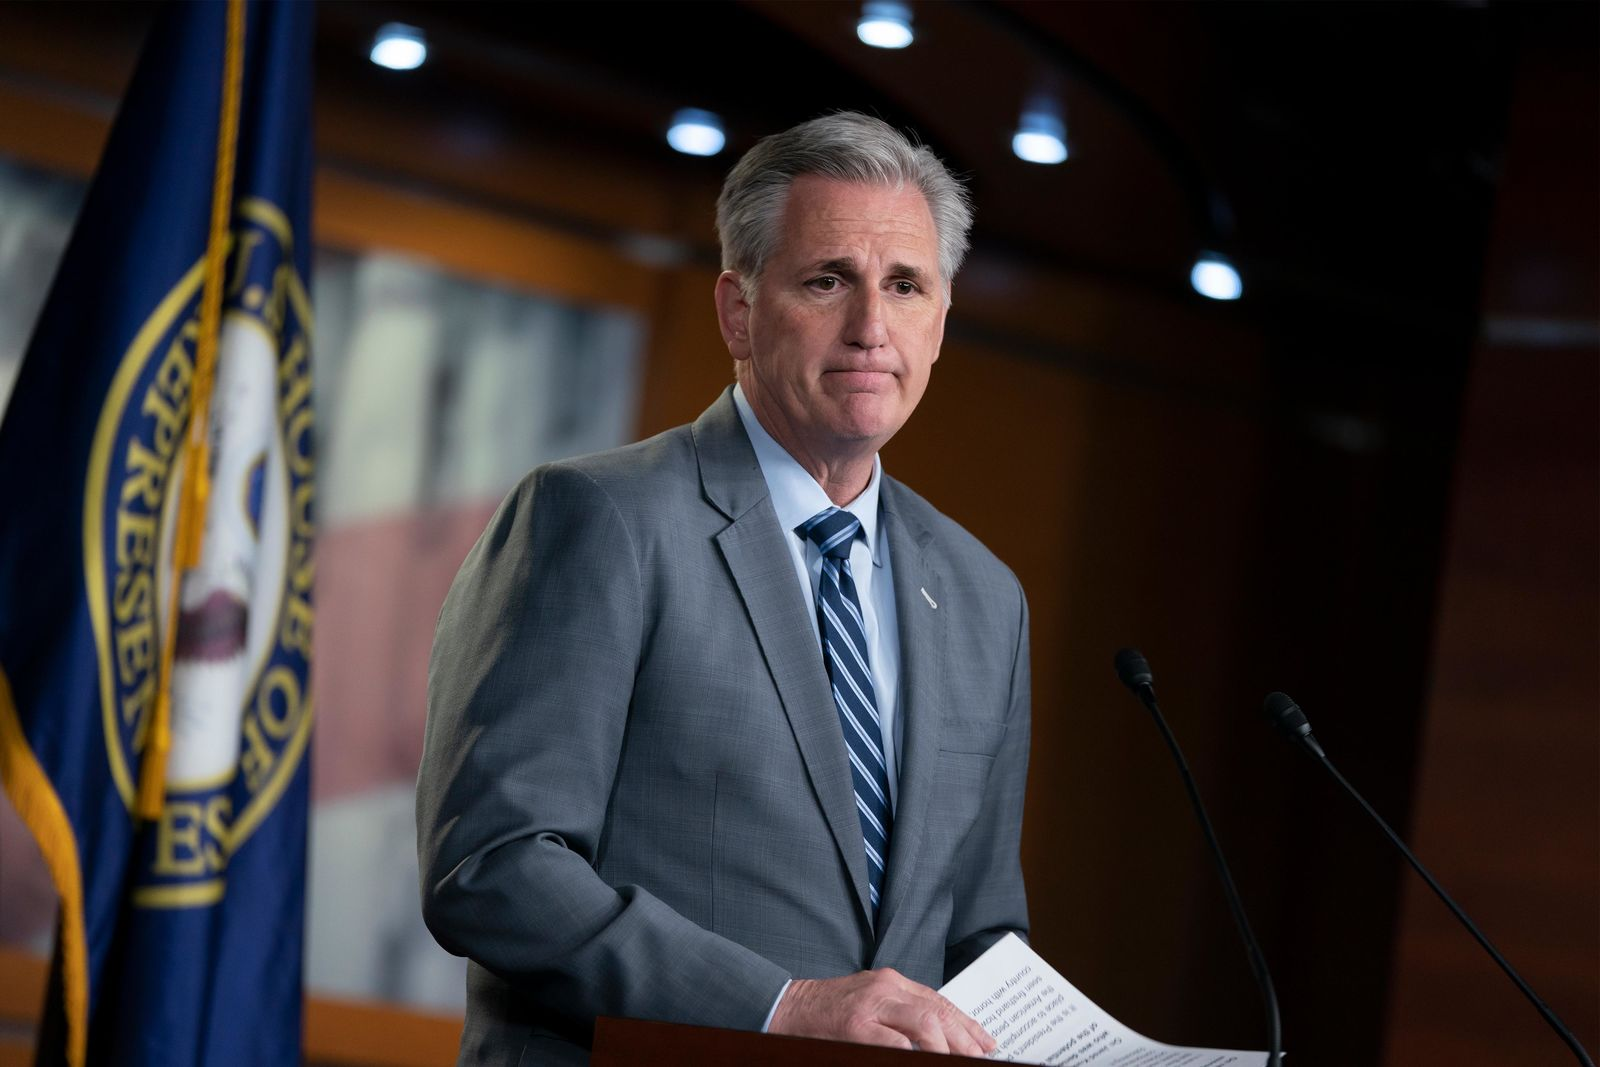 House Minority Leader Kevin McCarthy, R-Calif., speaks to reporters at a news conference on Capitol Hill in Washington, Thursday, April 4, 2019. (AP Photo/J. Scott Applewhite)